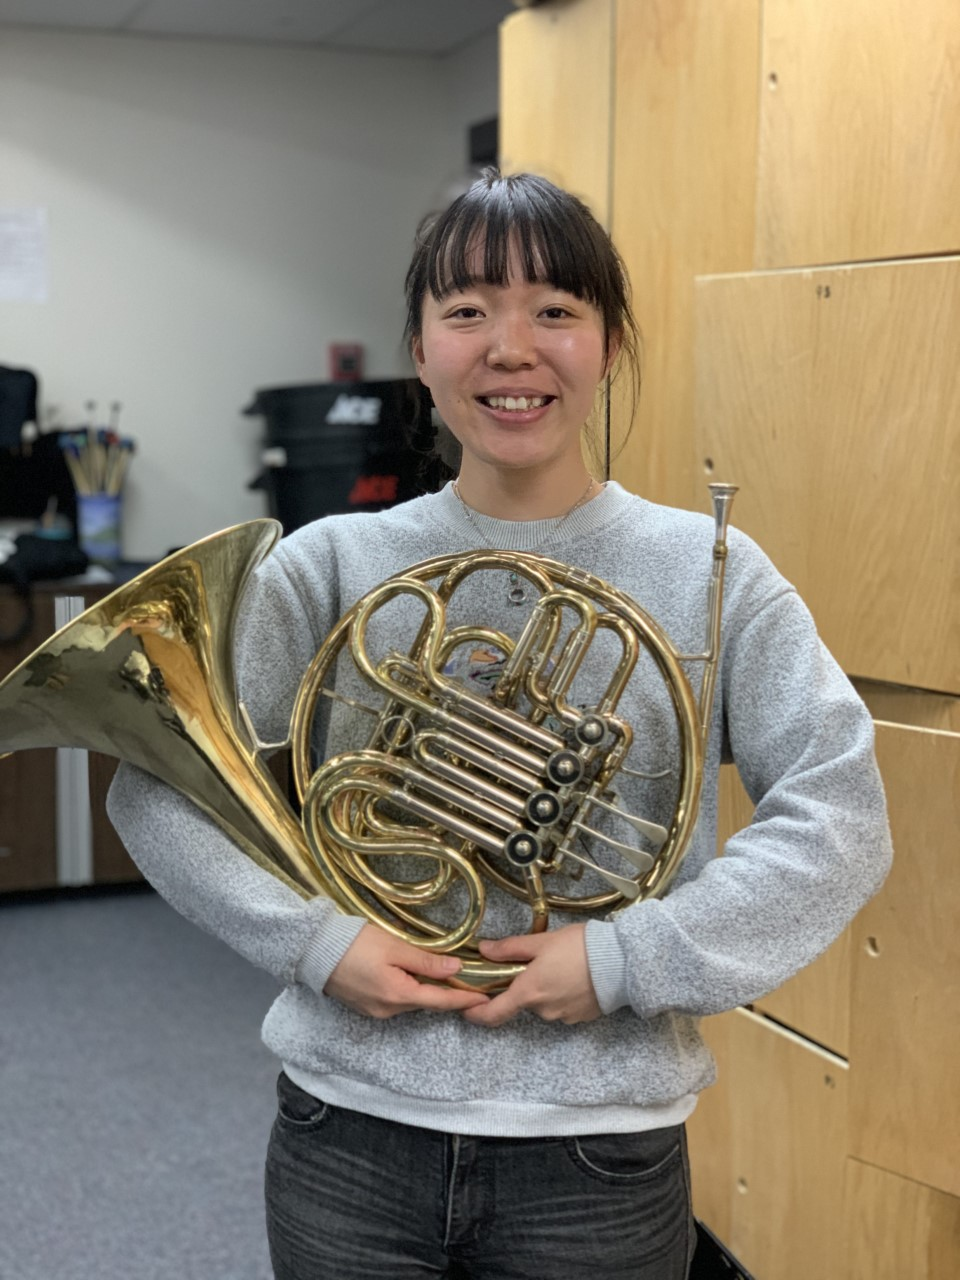 The image above shows Hiroka Umeda with her French horn.